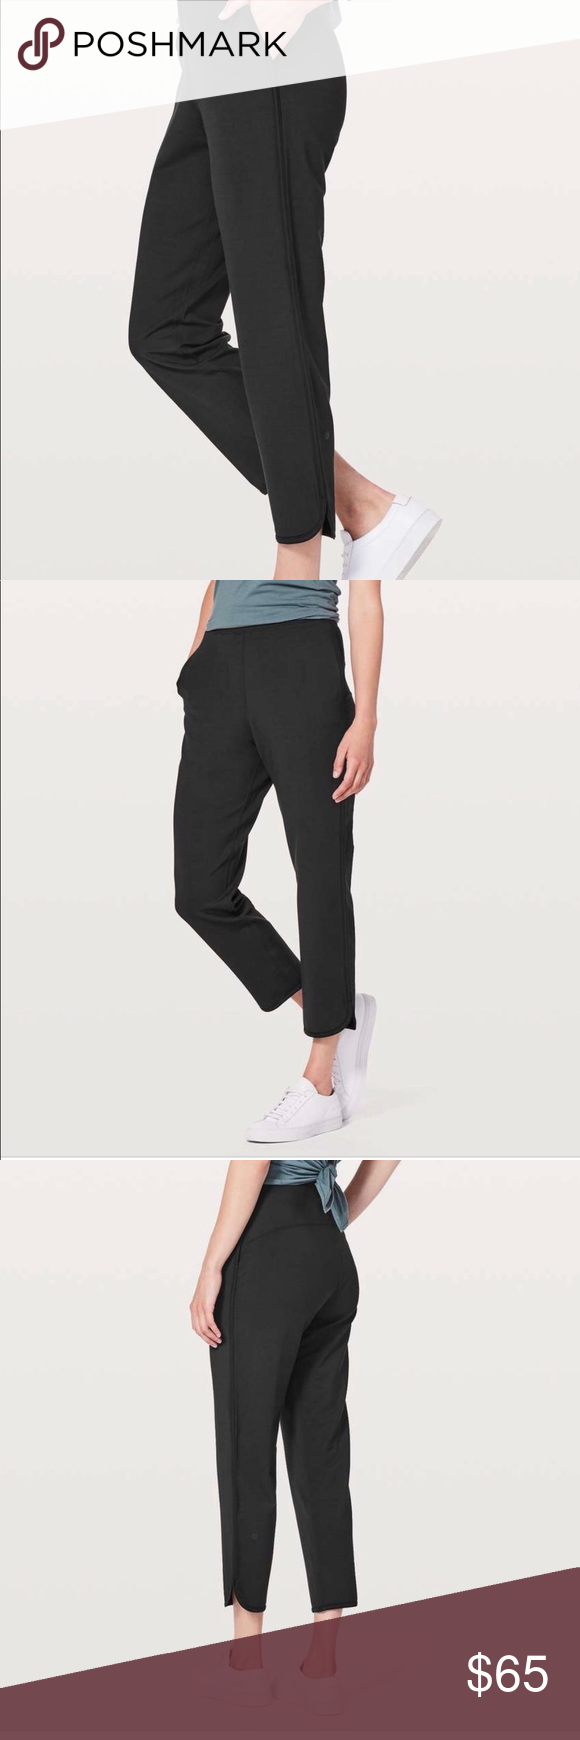 497deb714 Lululemon black Every moment pant These are made with super soft French  terry